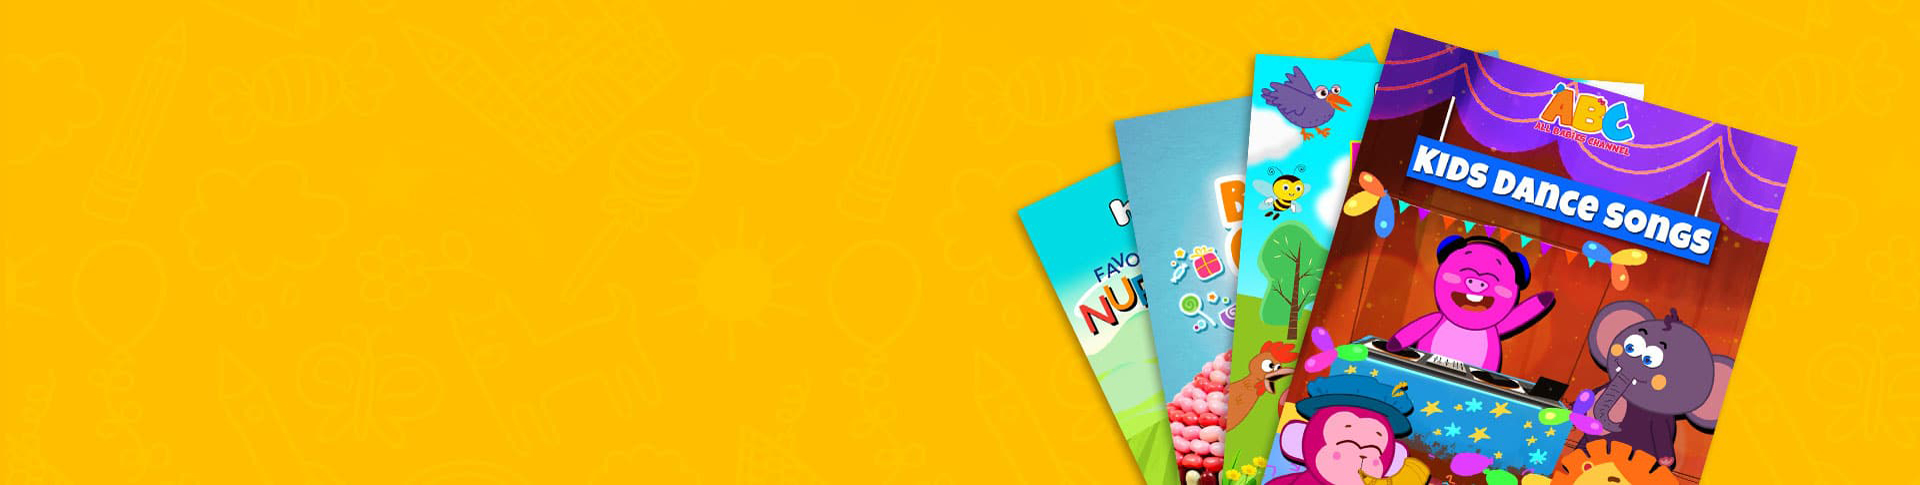 Hooplakidz nursery rhymes for kids banner1